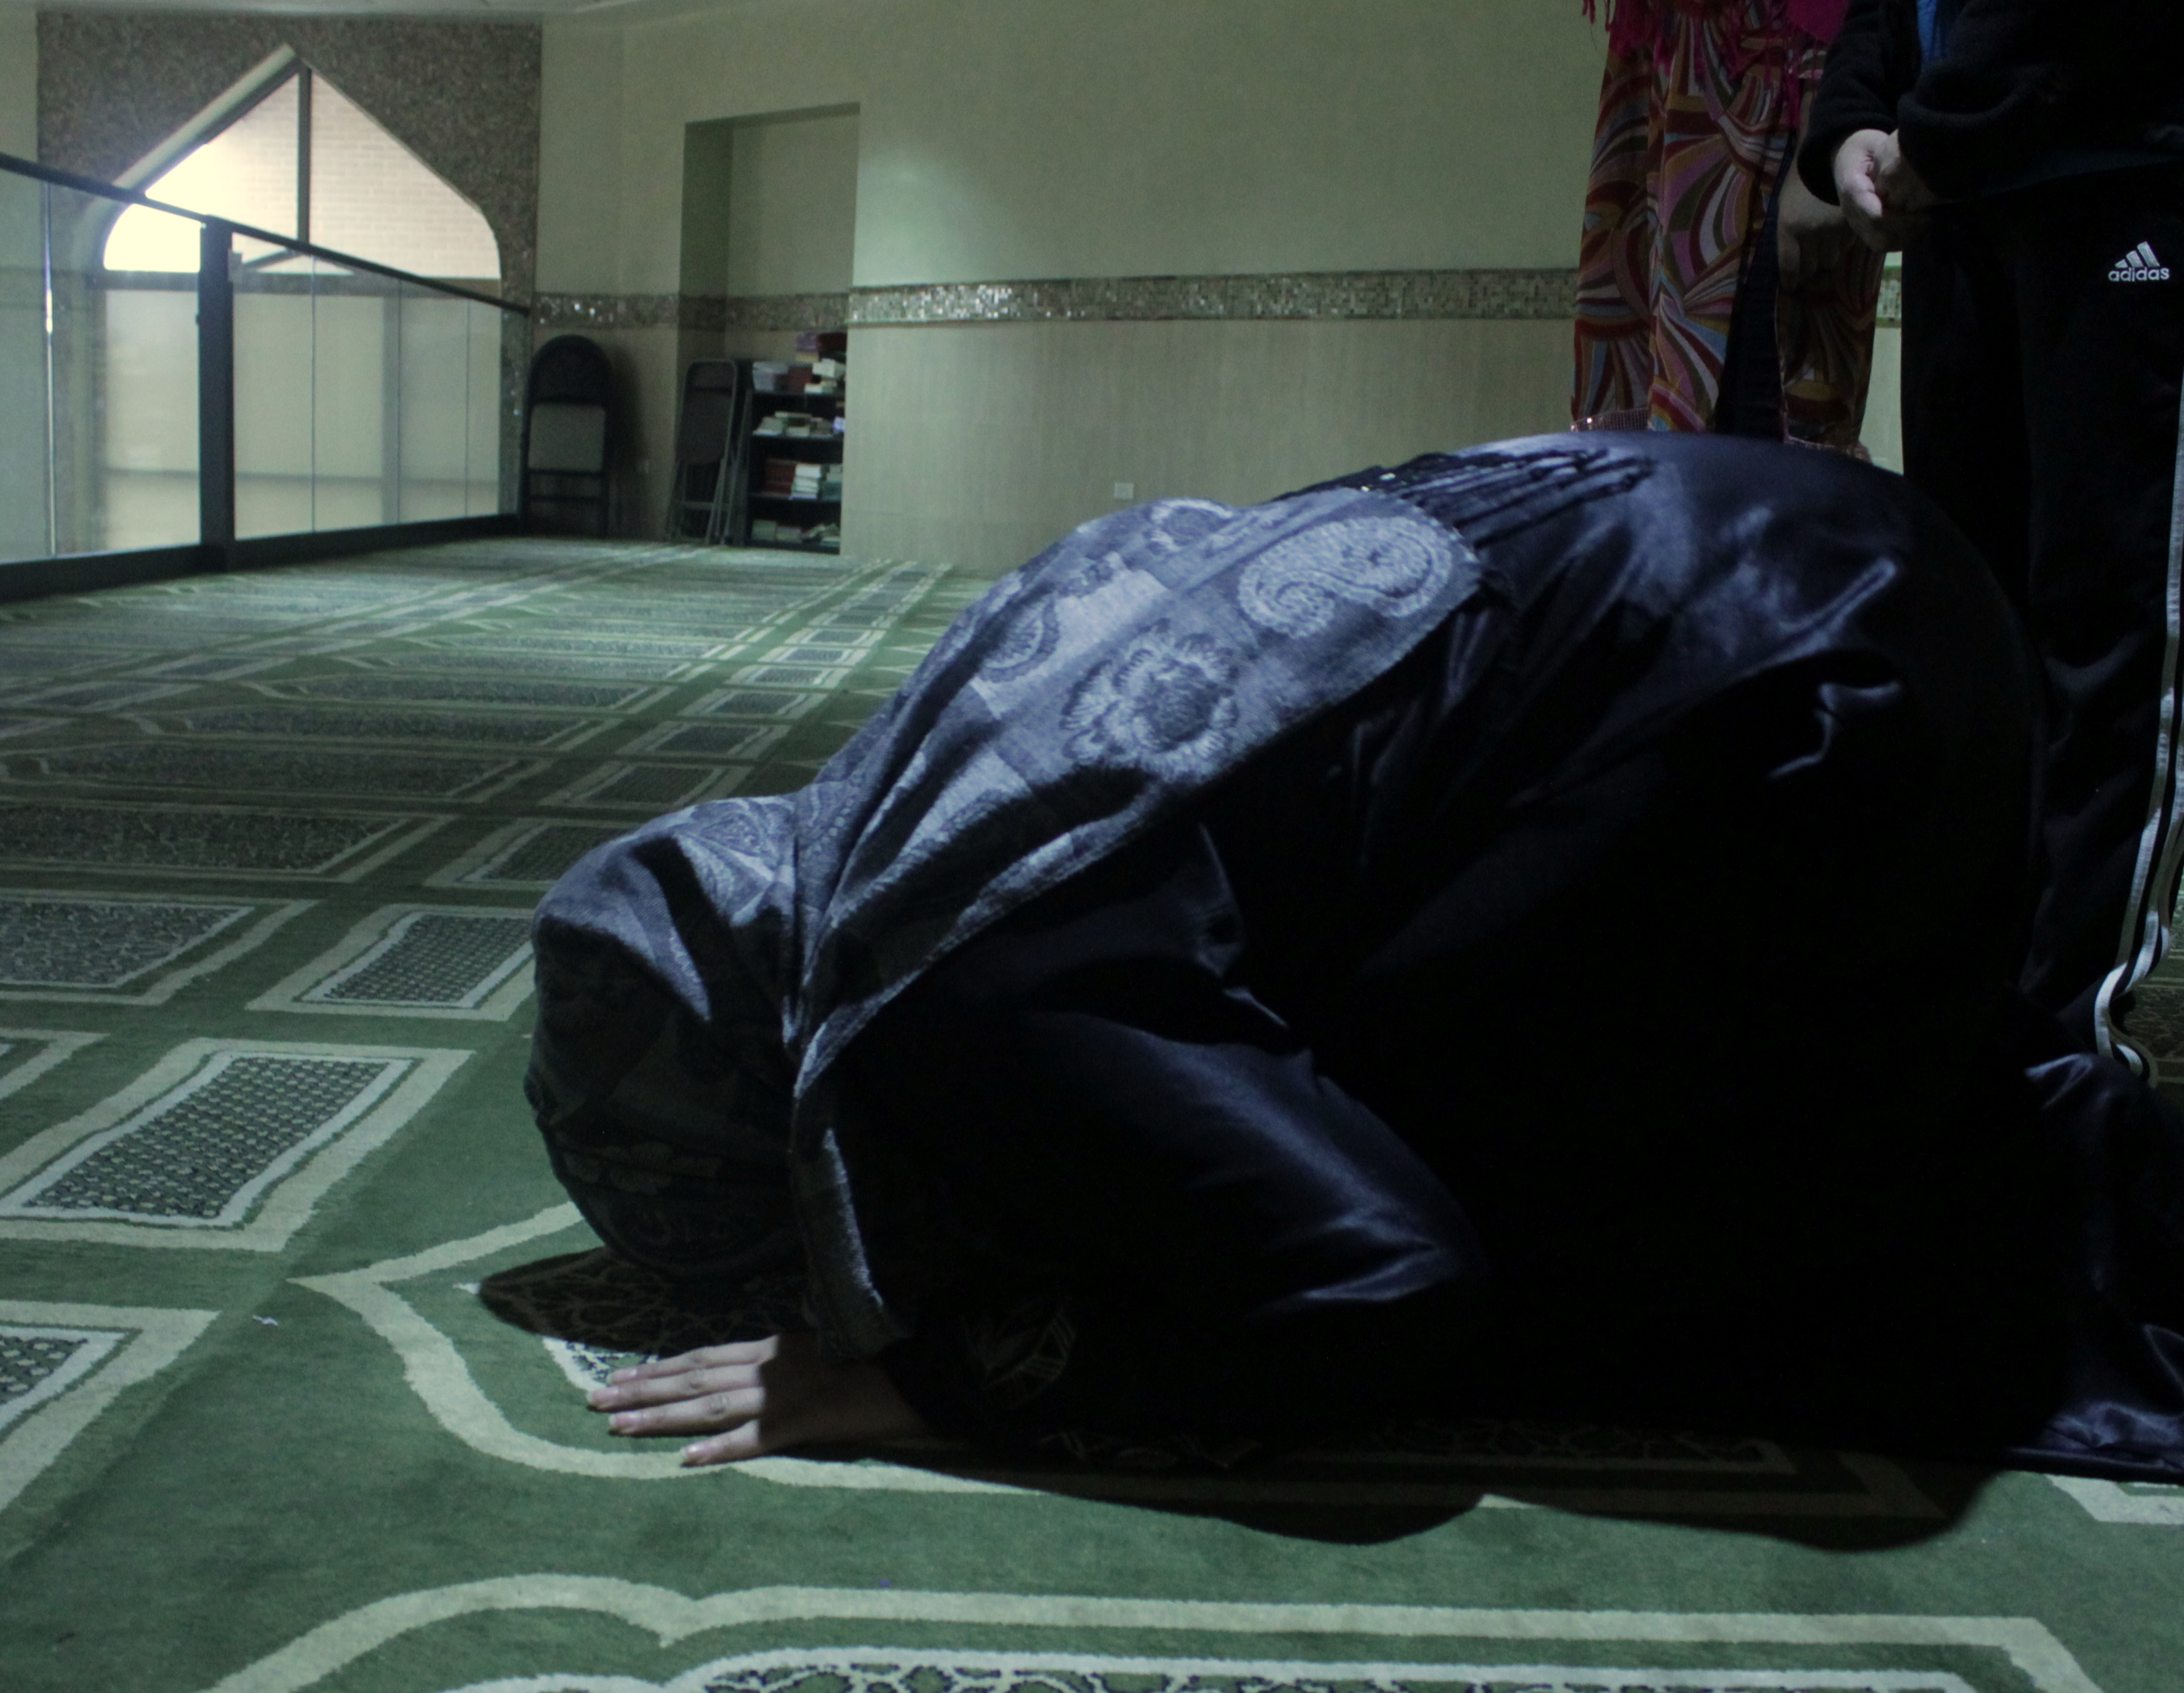 How Should a Woman Prostrate in Prayer?